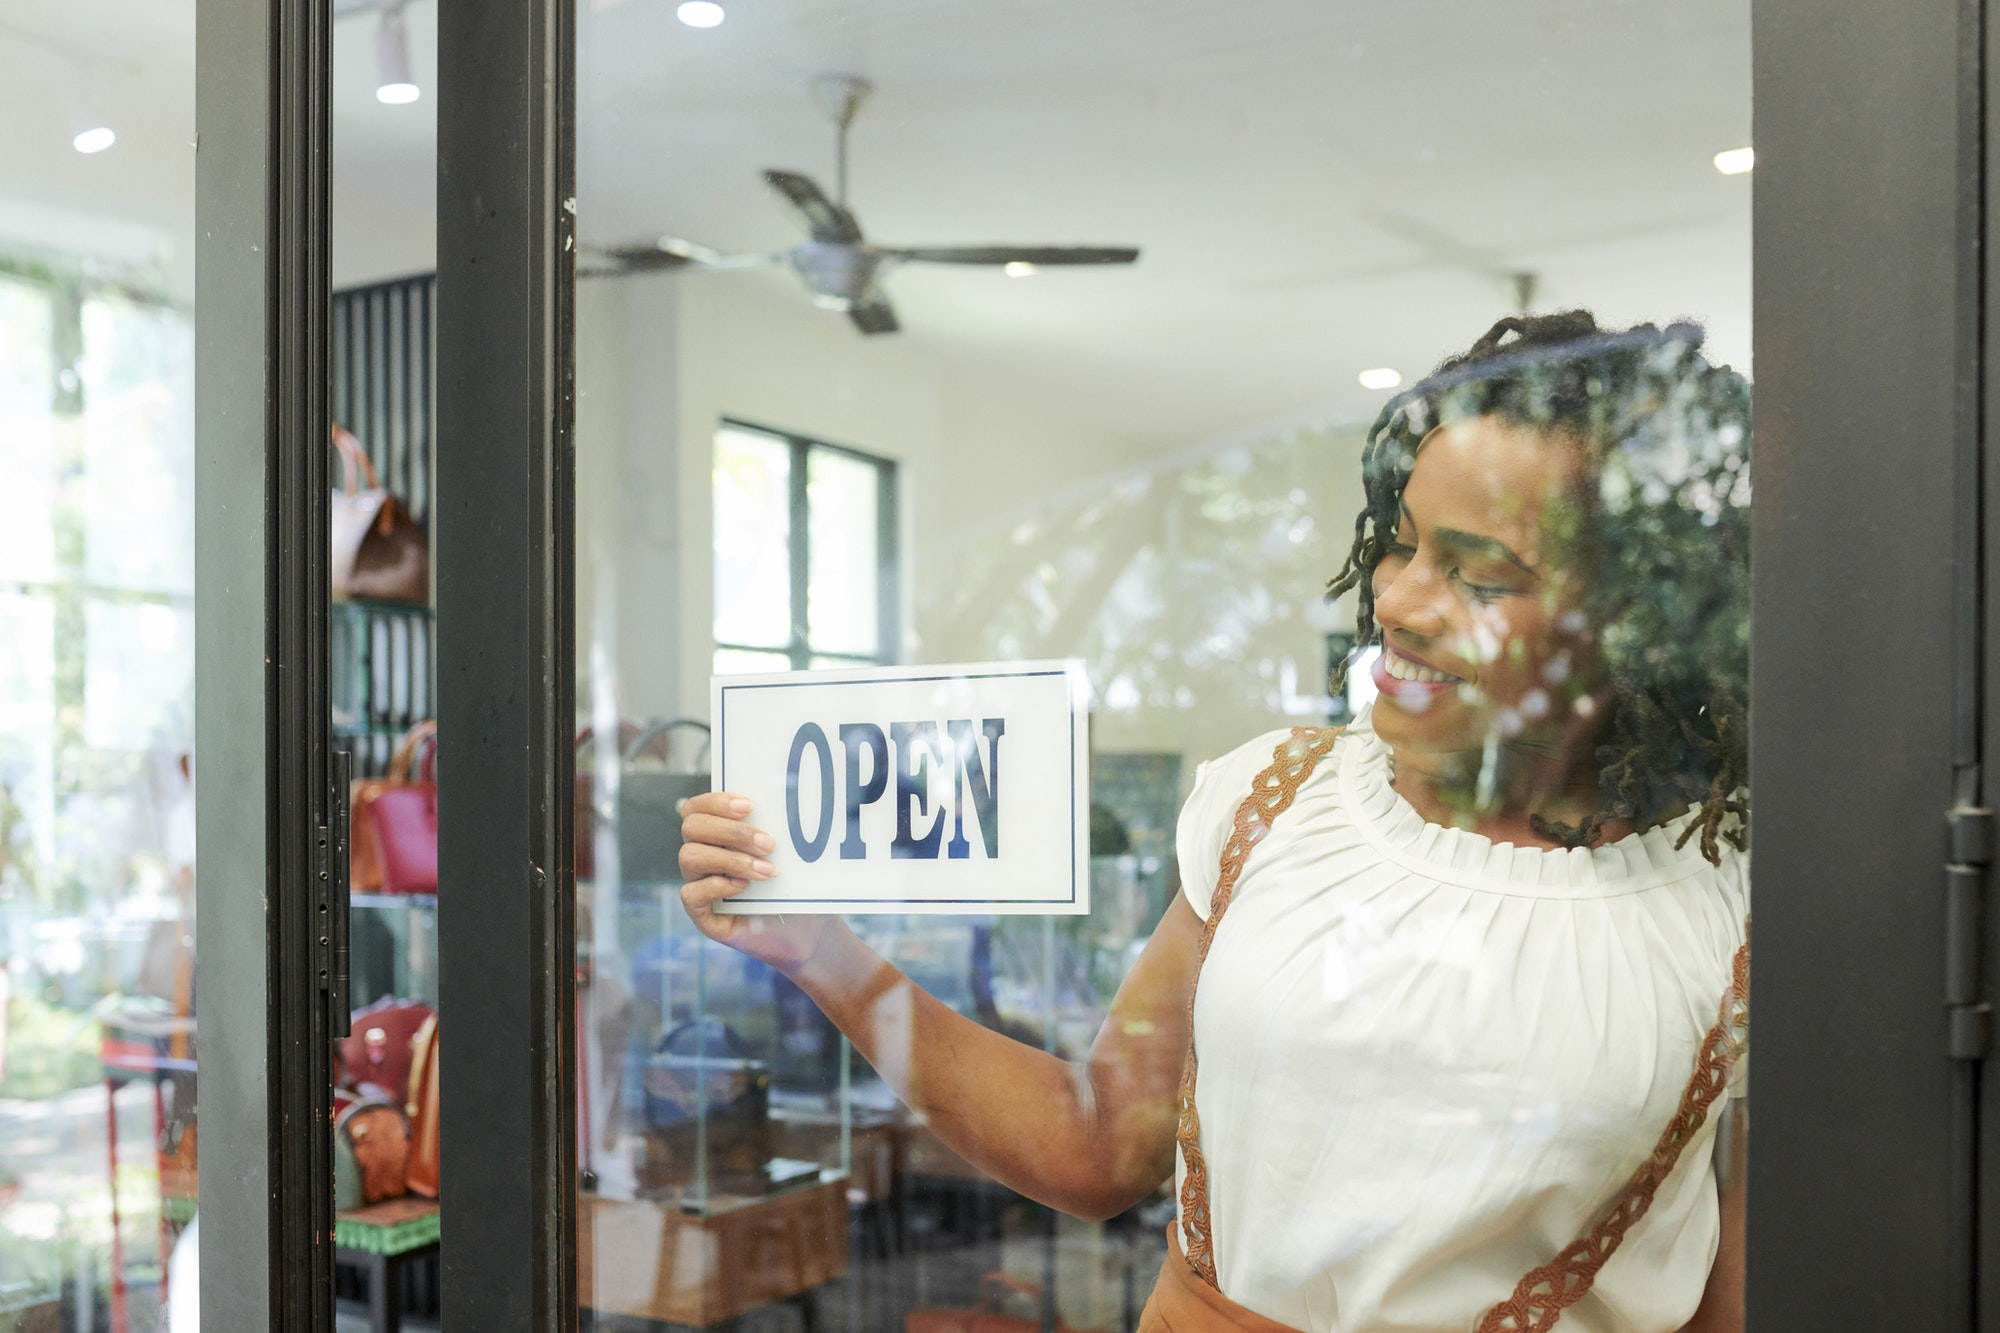 Shop assistant opening store